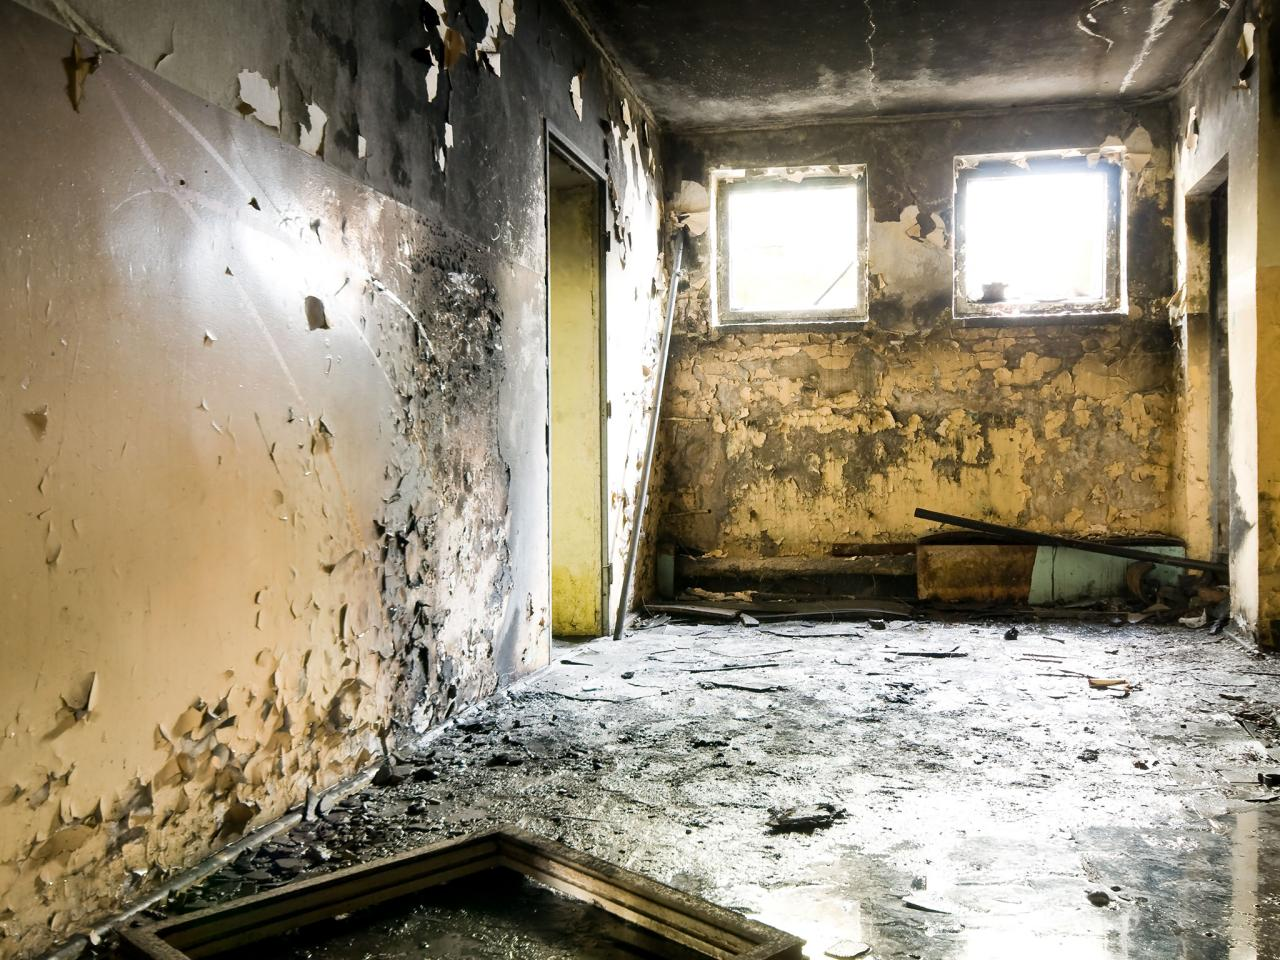 Black Mold In Walls black mold symptoms and health effects | hgtv